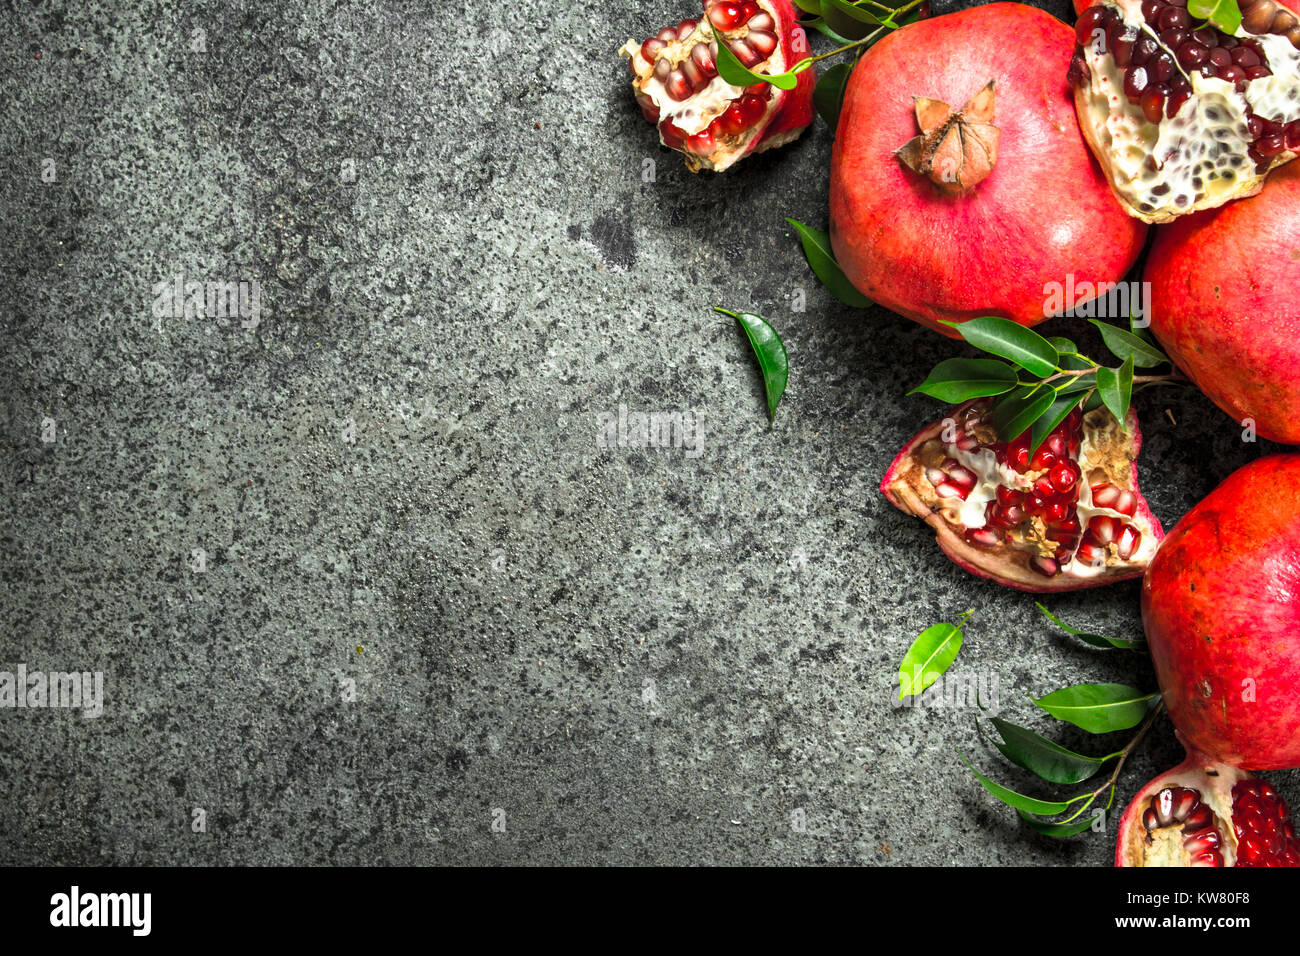 Ripe pomegranates with leaves. On a rustic background. - Stock Image